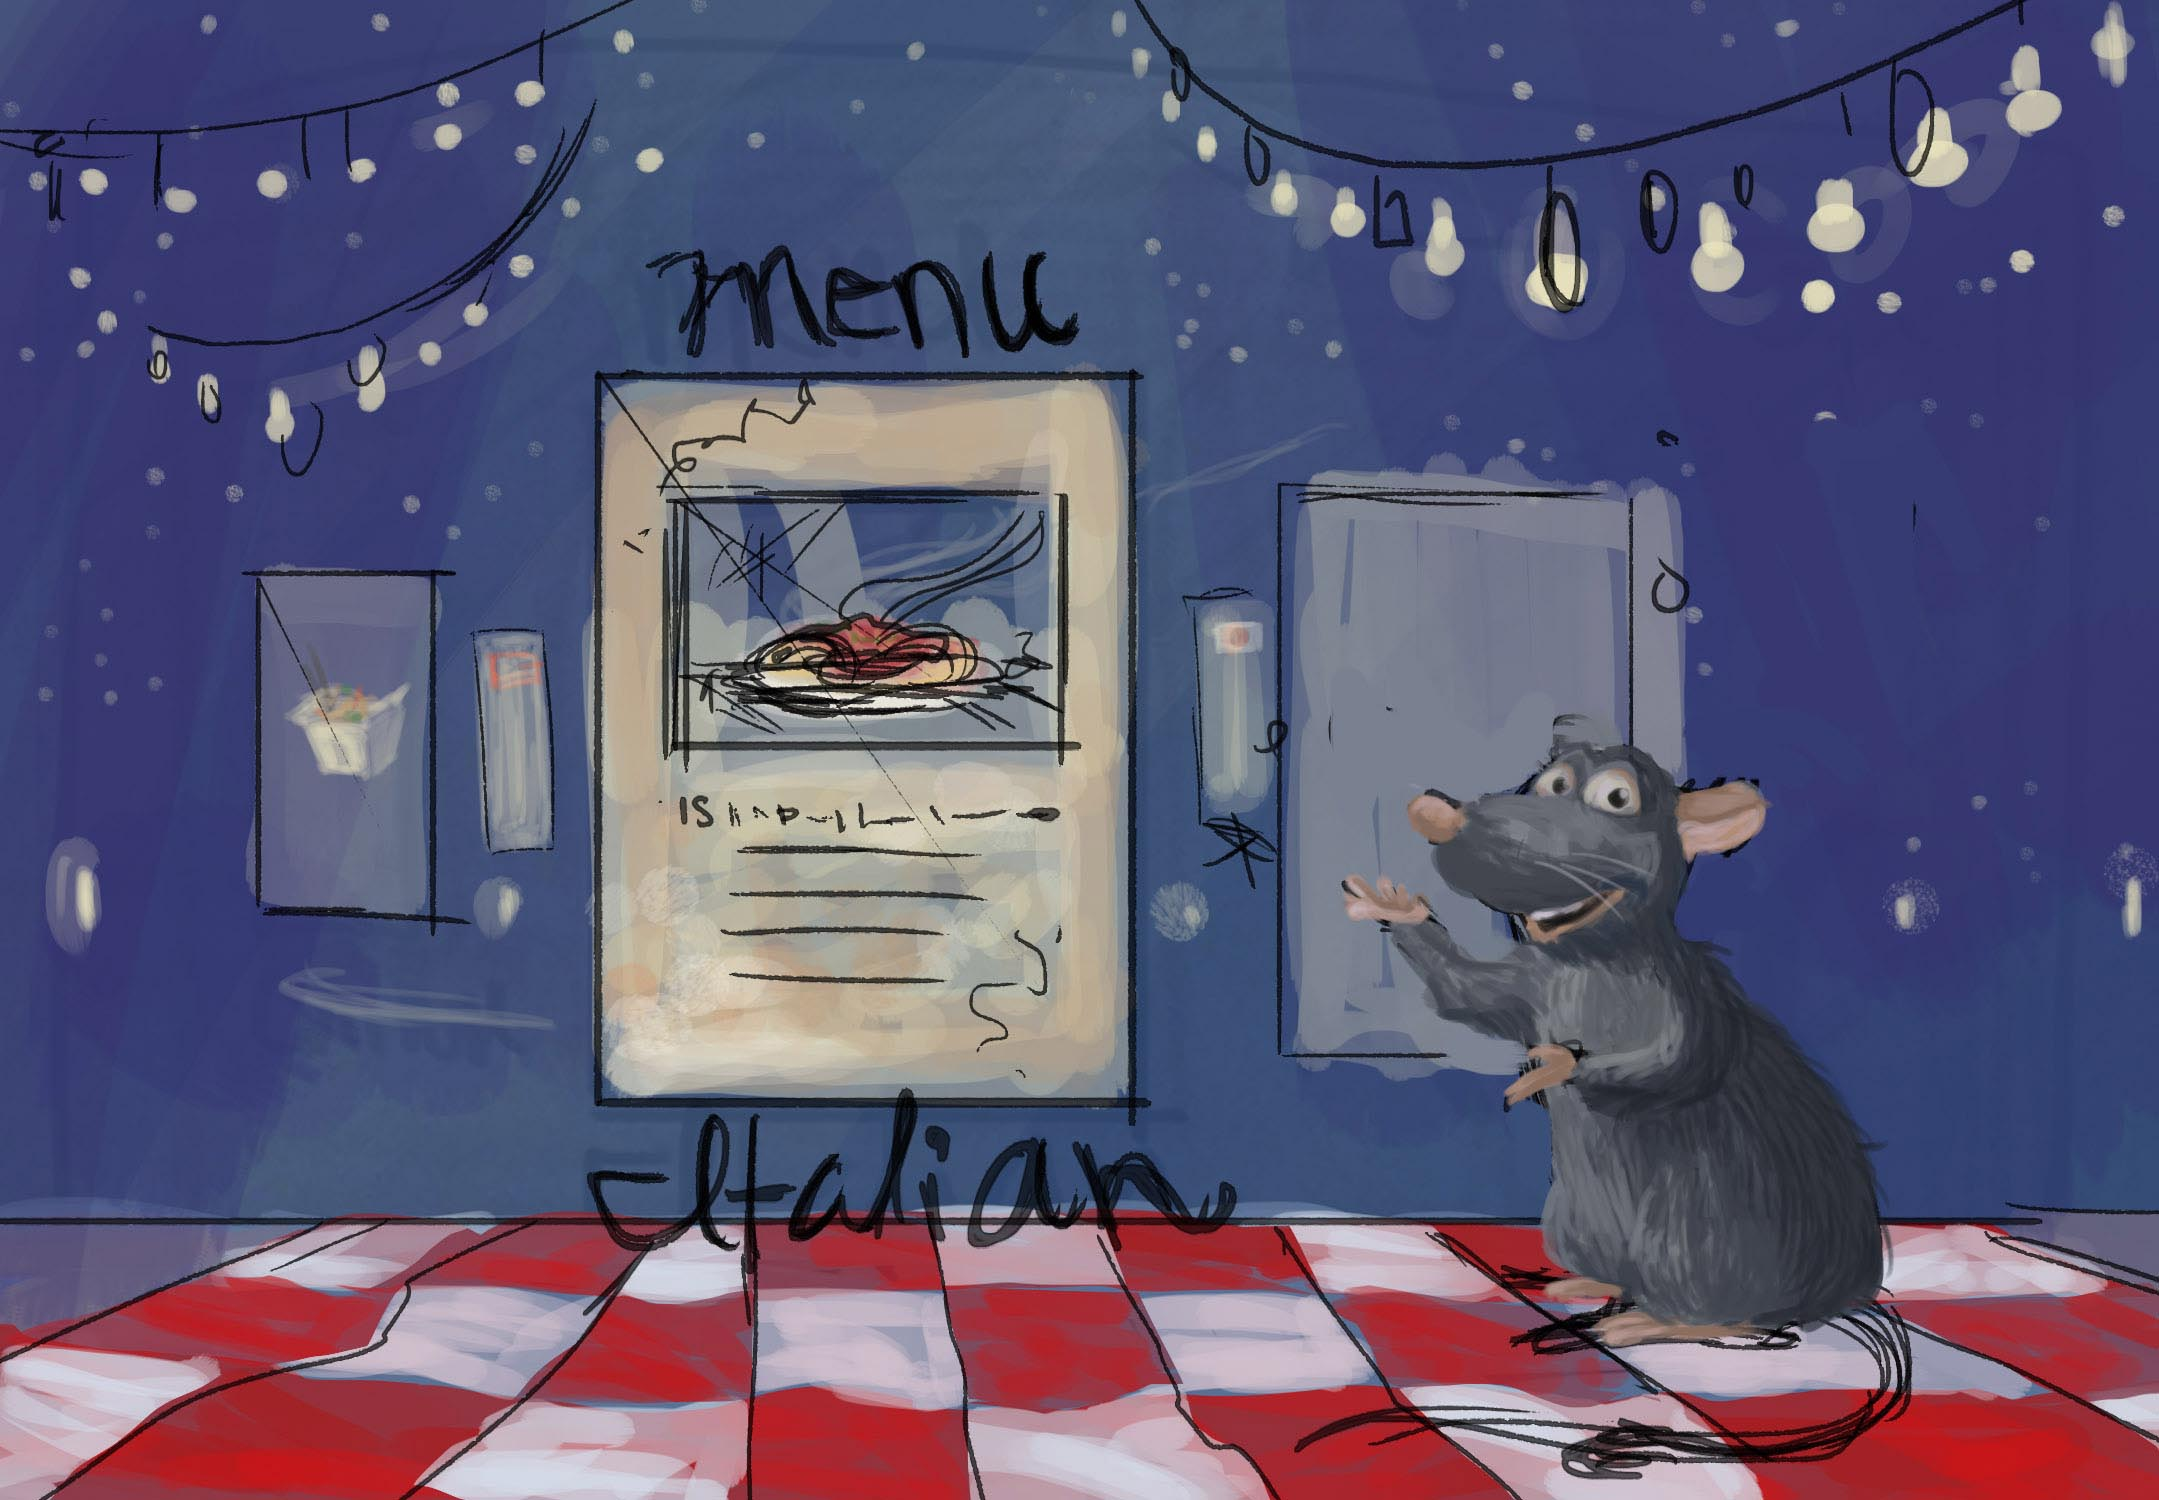 We believed that this concept could easily be adapted to other cities and special events. This was a quick concept sketch for a special food event featuring Remy from Ratatouille. Here he is showing the guests different menus they can choose from.